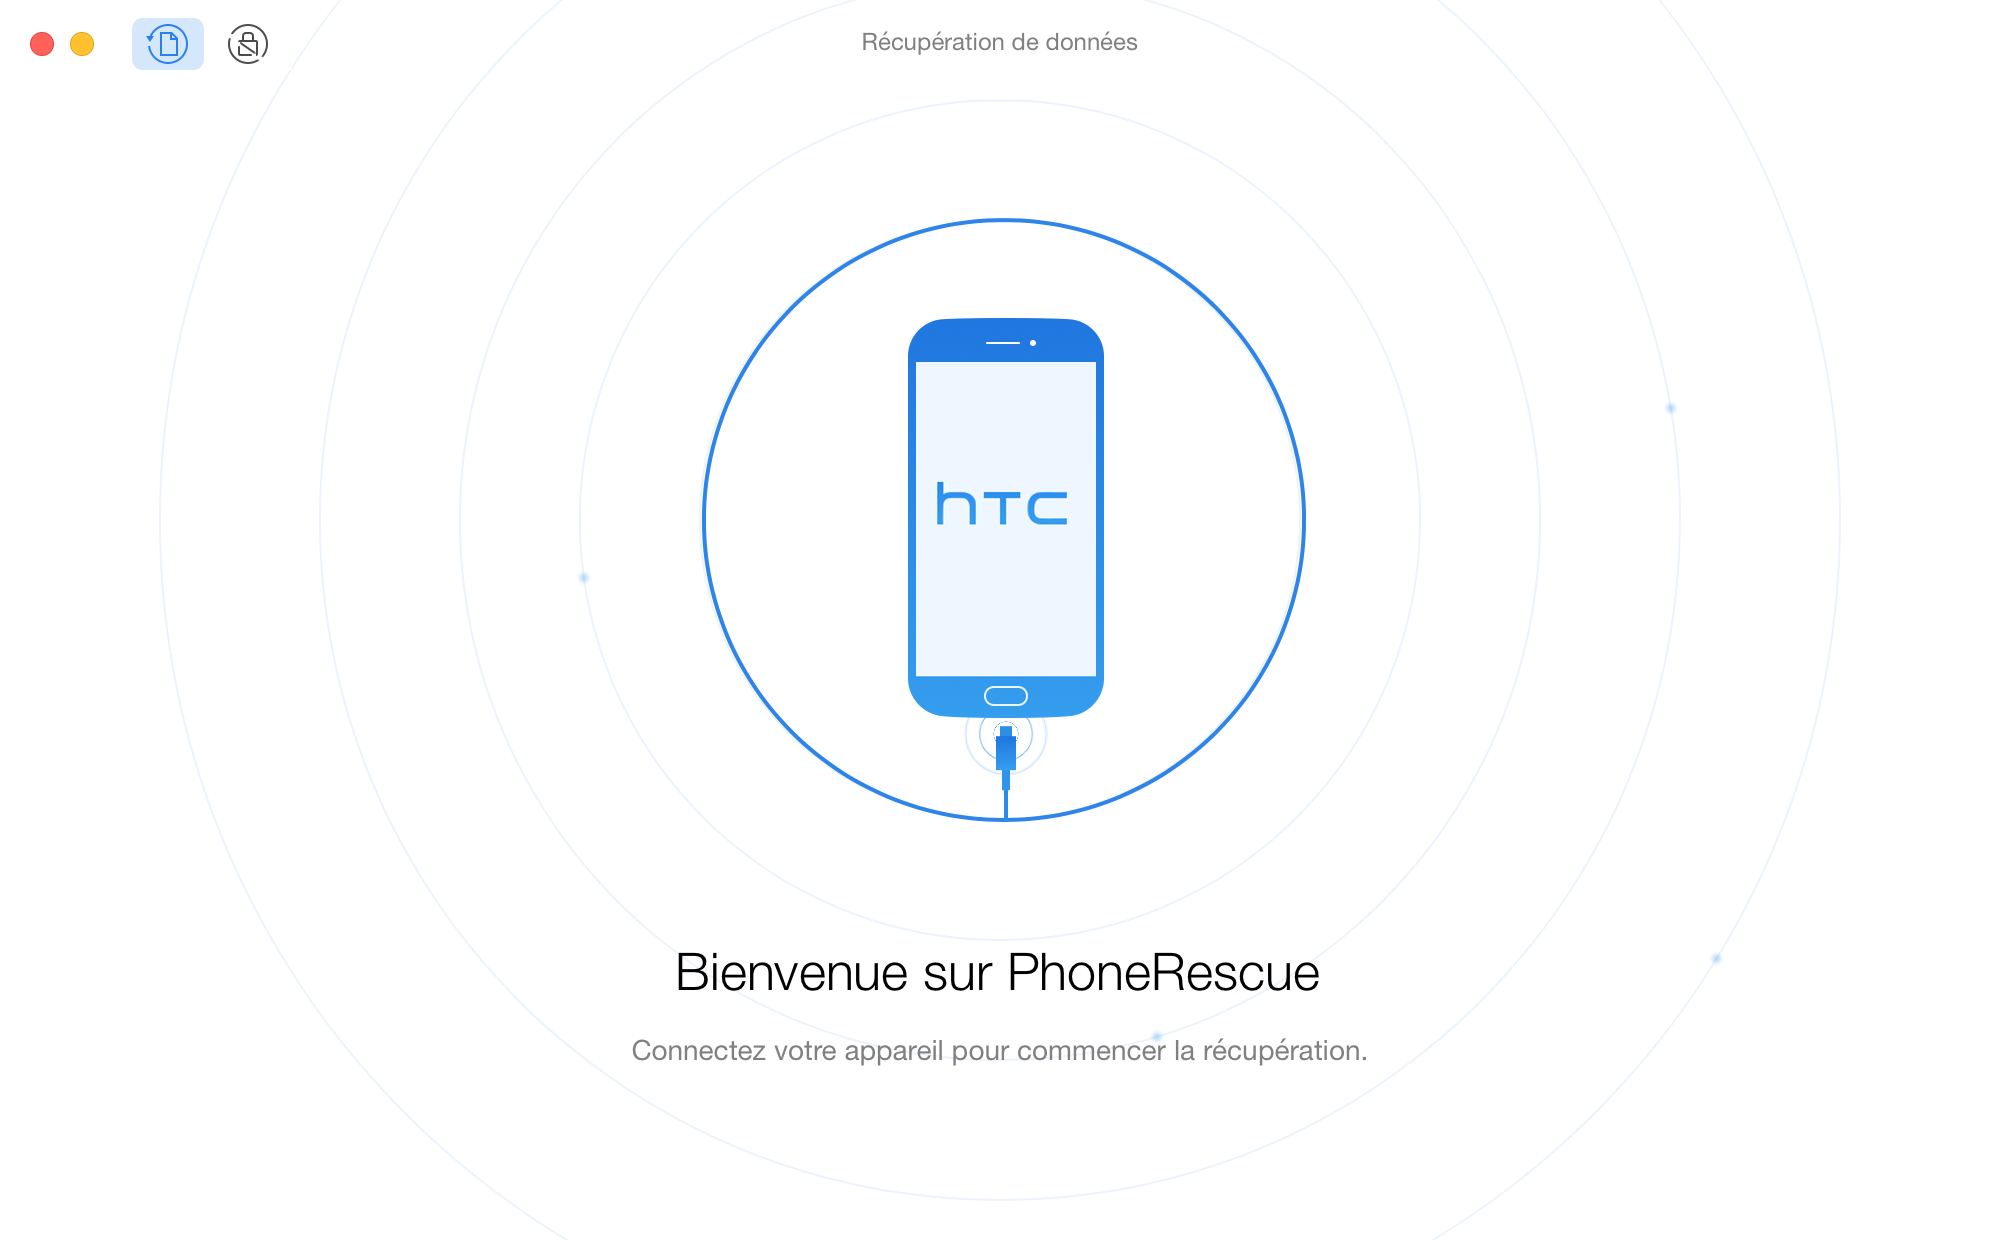 L'interface d'accueil de PhoneRescue pour HTC